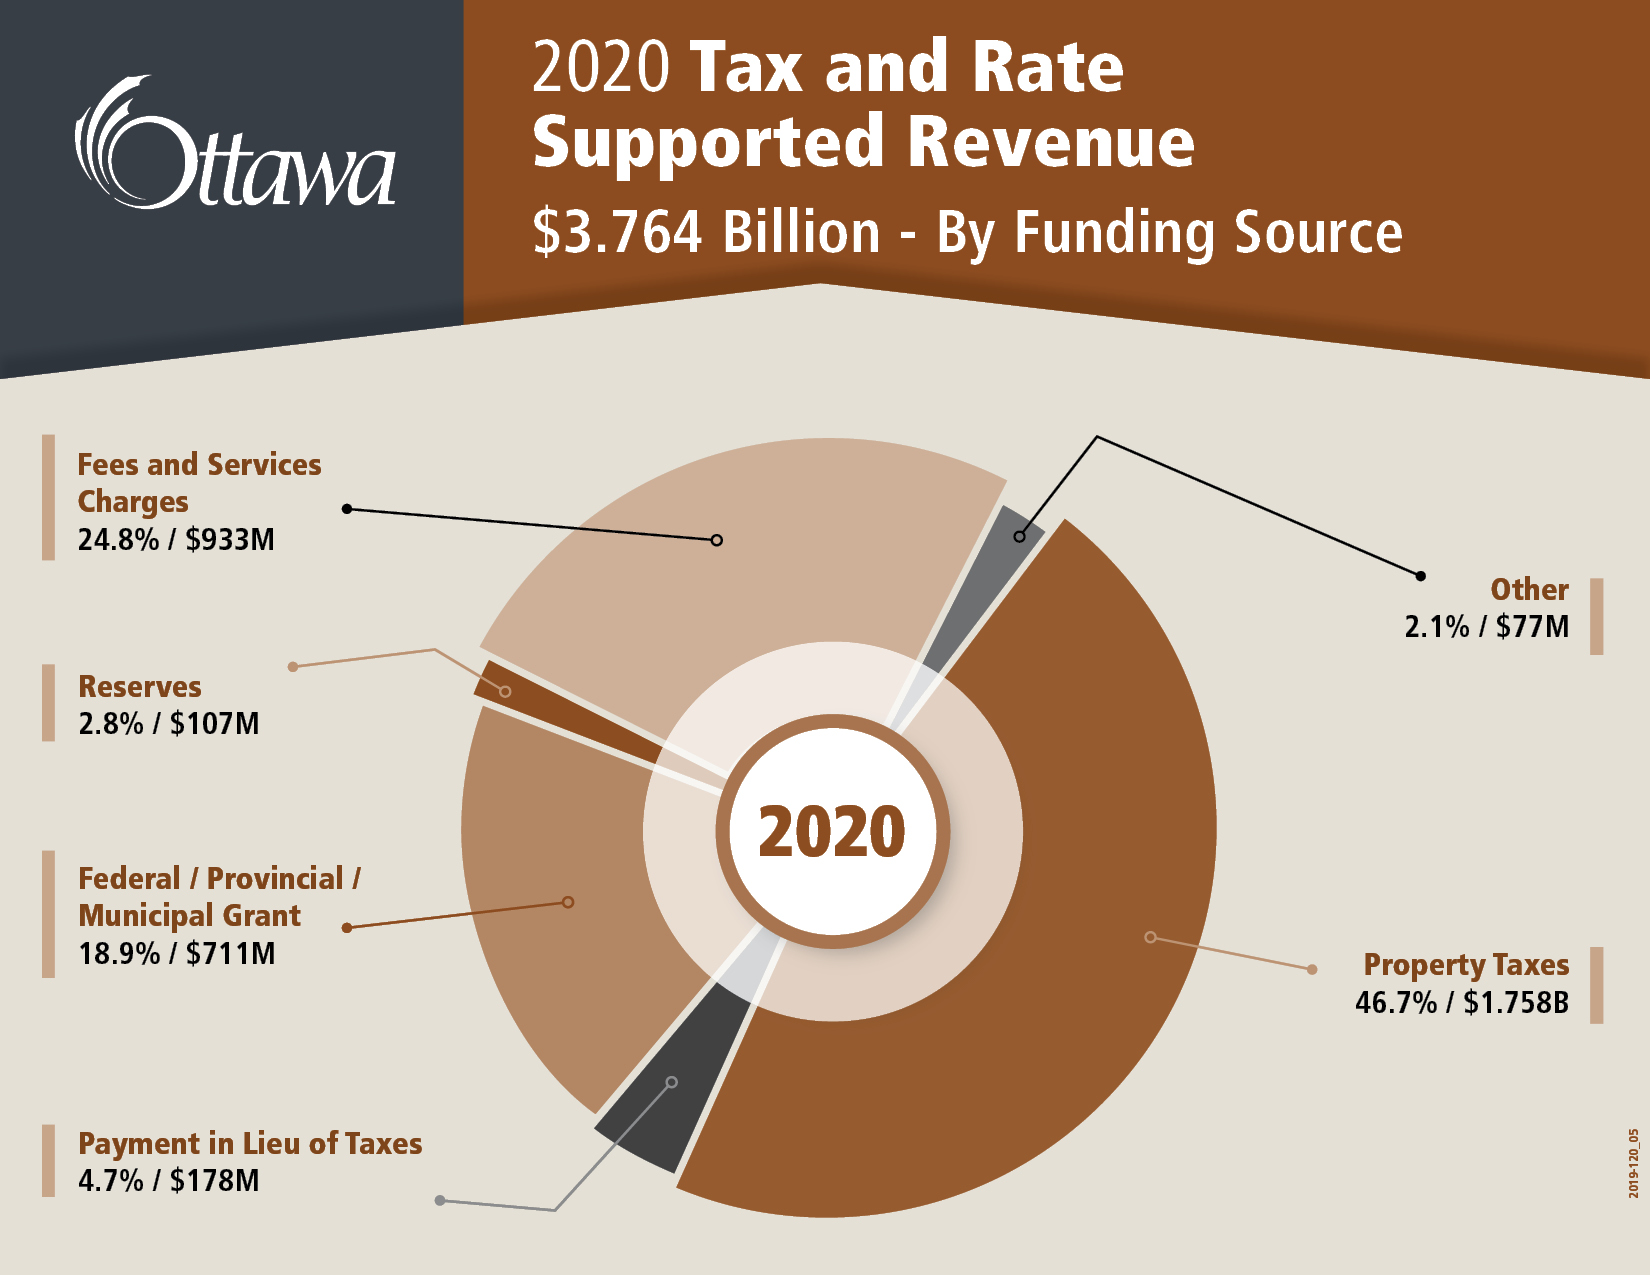 2020 Tax and Rate Supported Revenue $3.764 Billion - By Funding Source